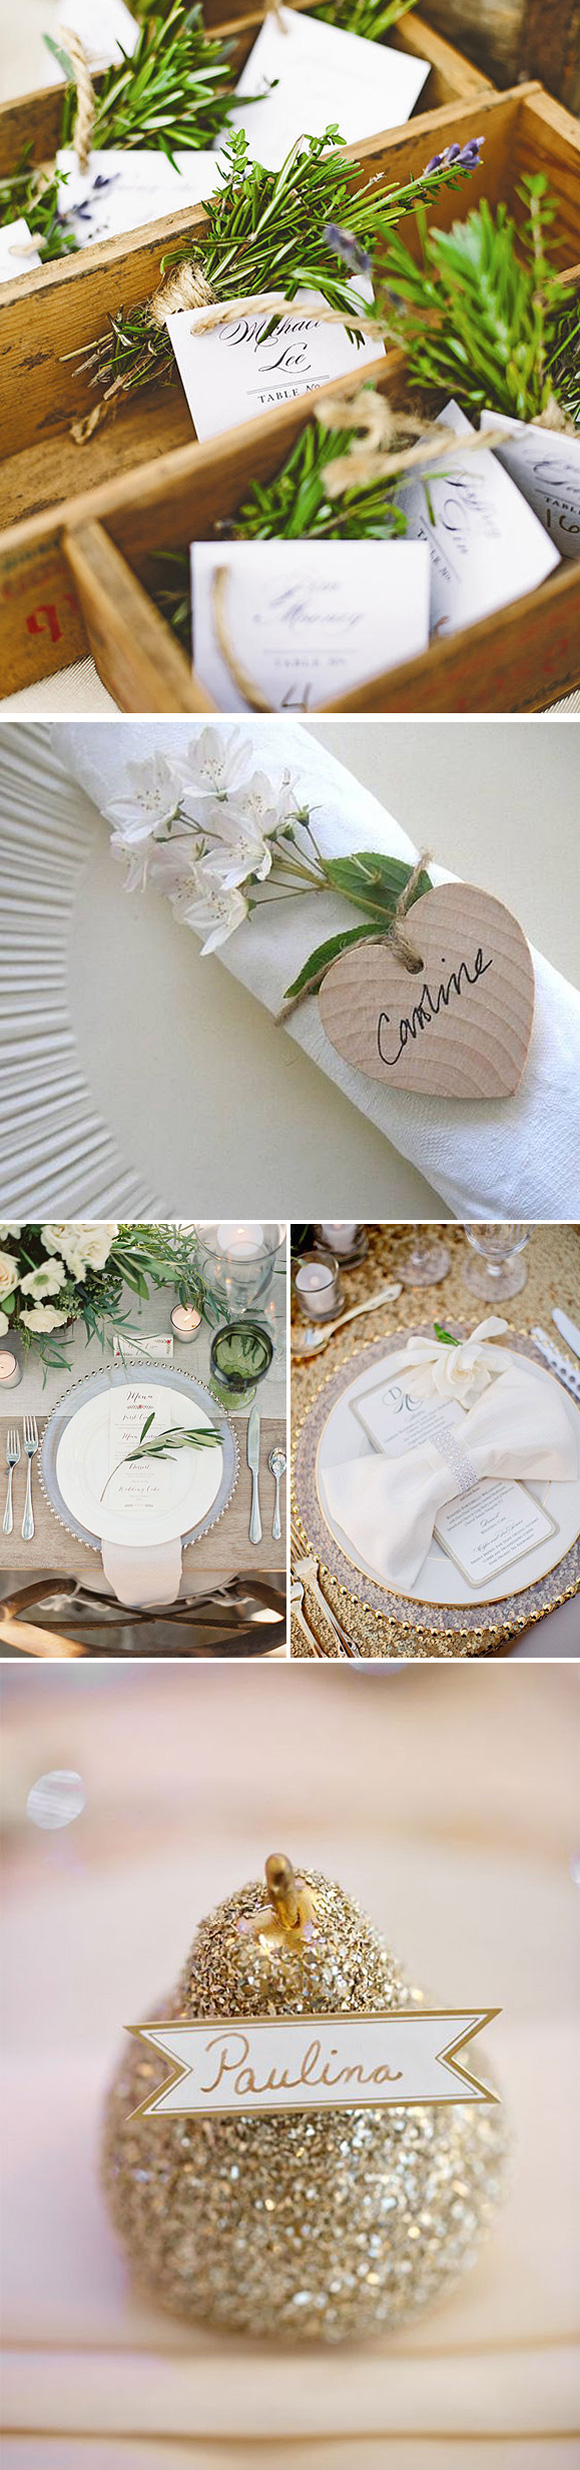 Ideas para decorar los platos de los invitados en las bodas for Ideas originales de decoracion